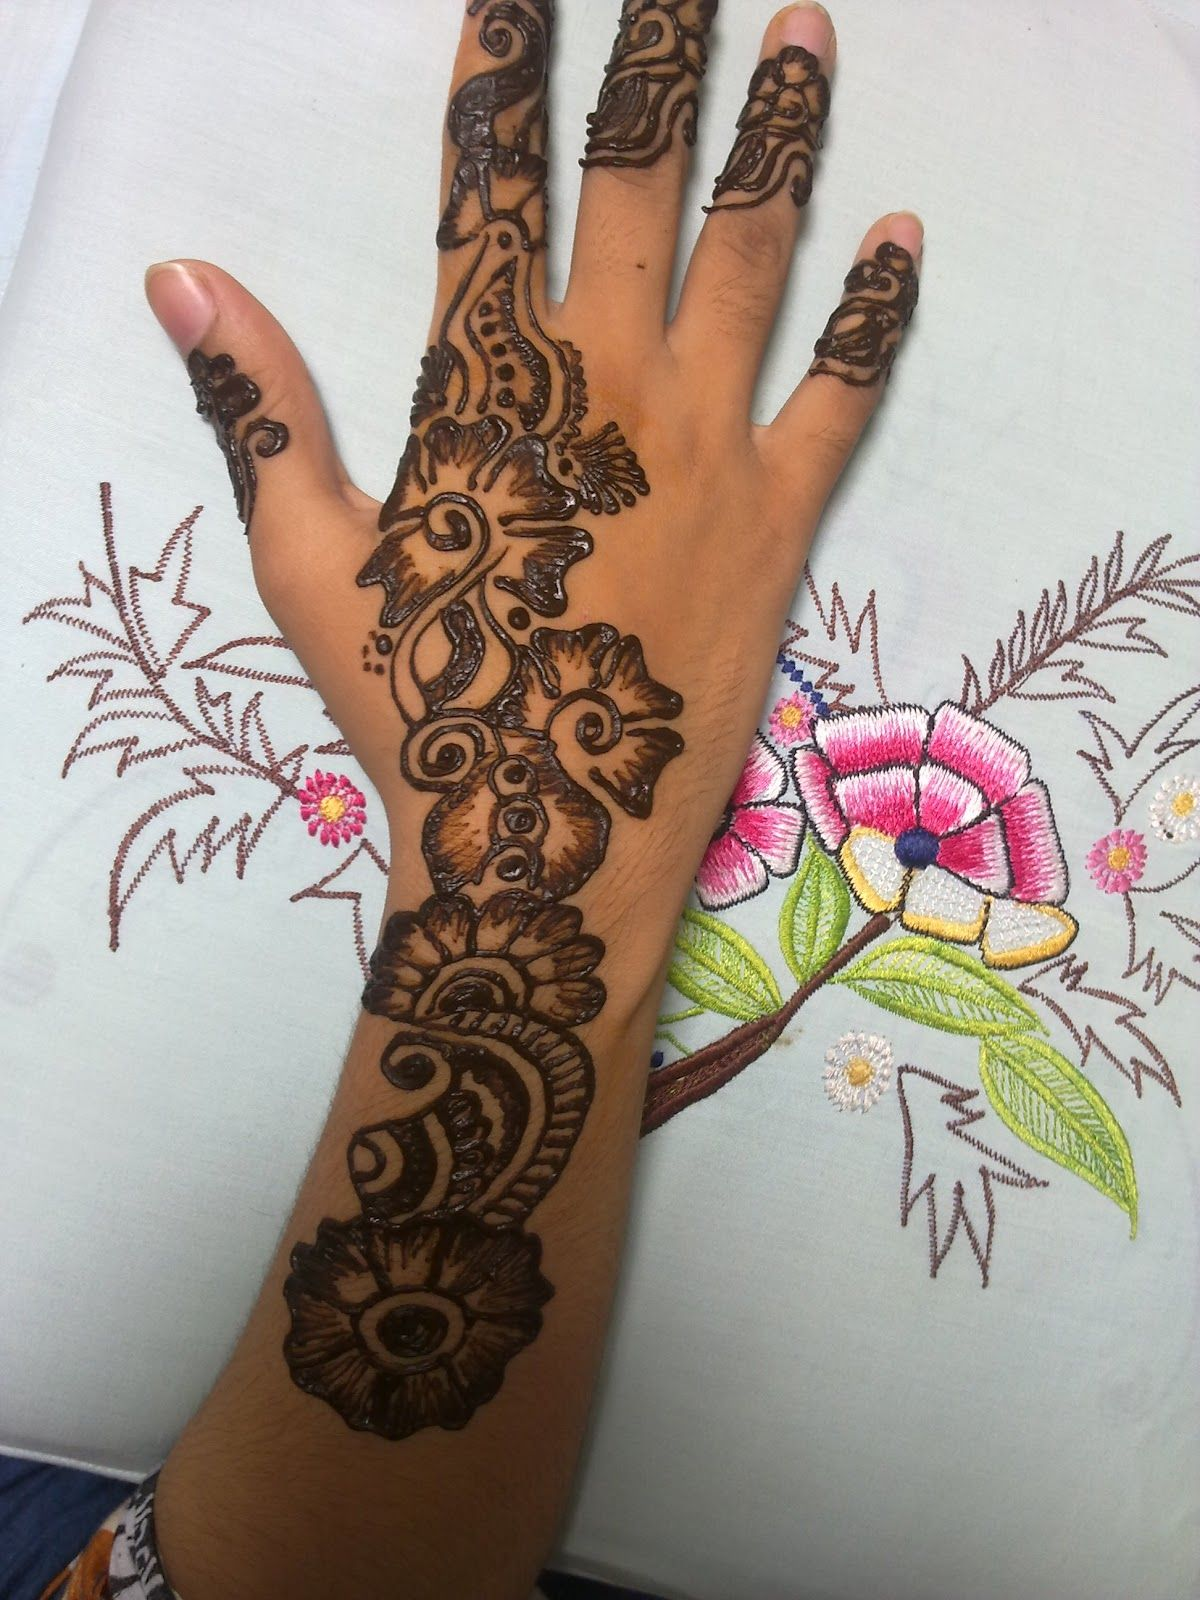 looking for Simple Arabic Mehndi Designs For Full Hands 2012. find ... for Latest Simple Mehndi Designs For Hands 2012 Images  568zmd